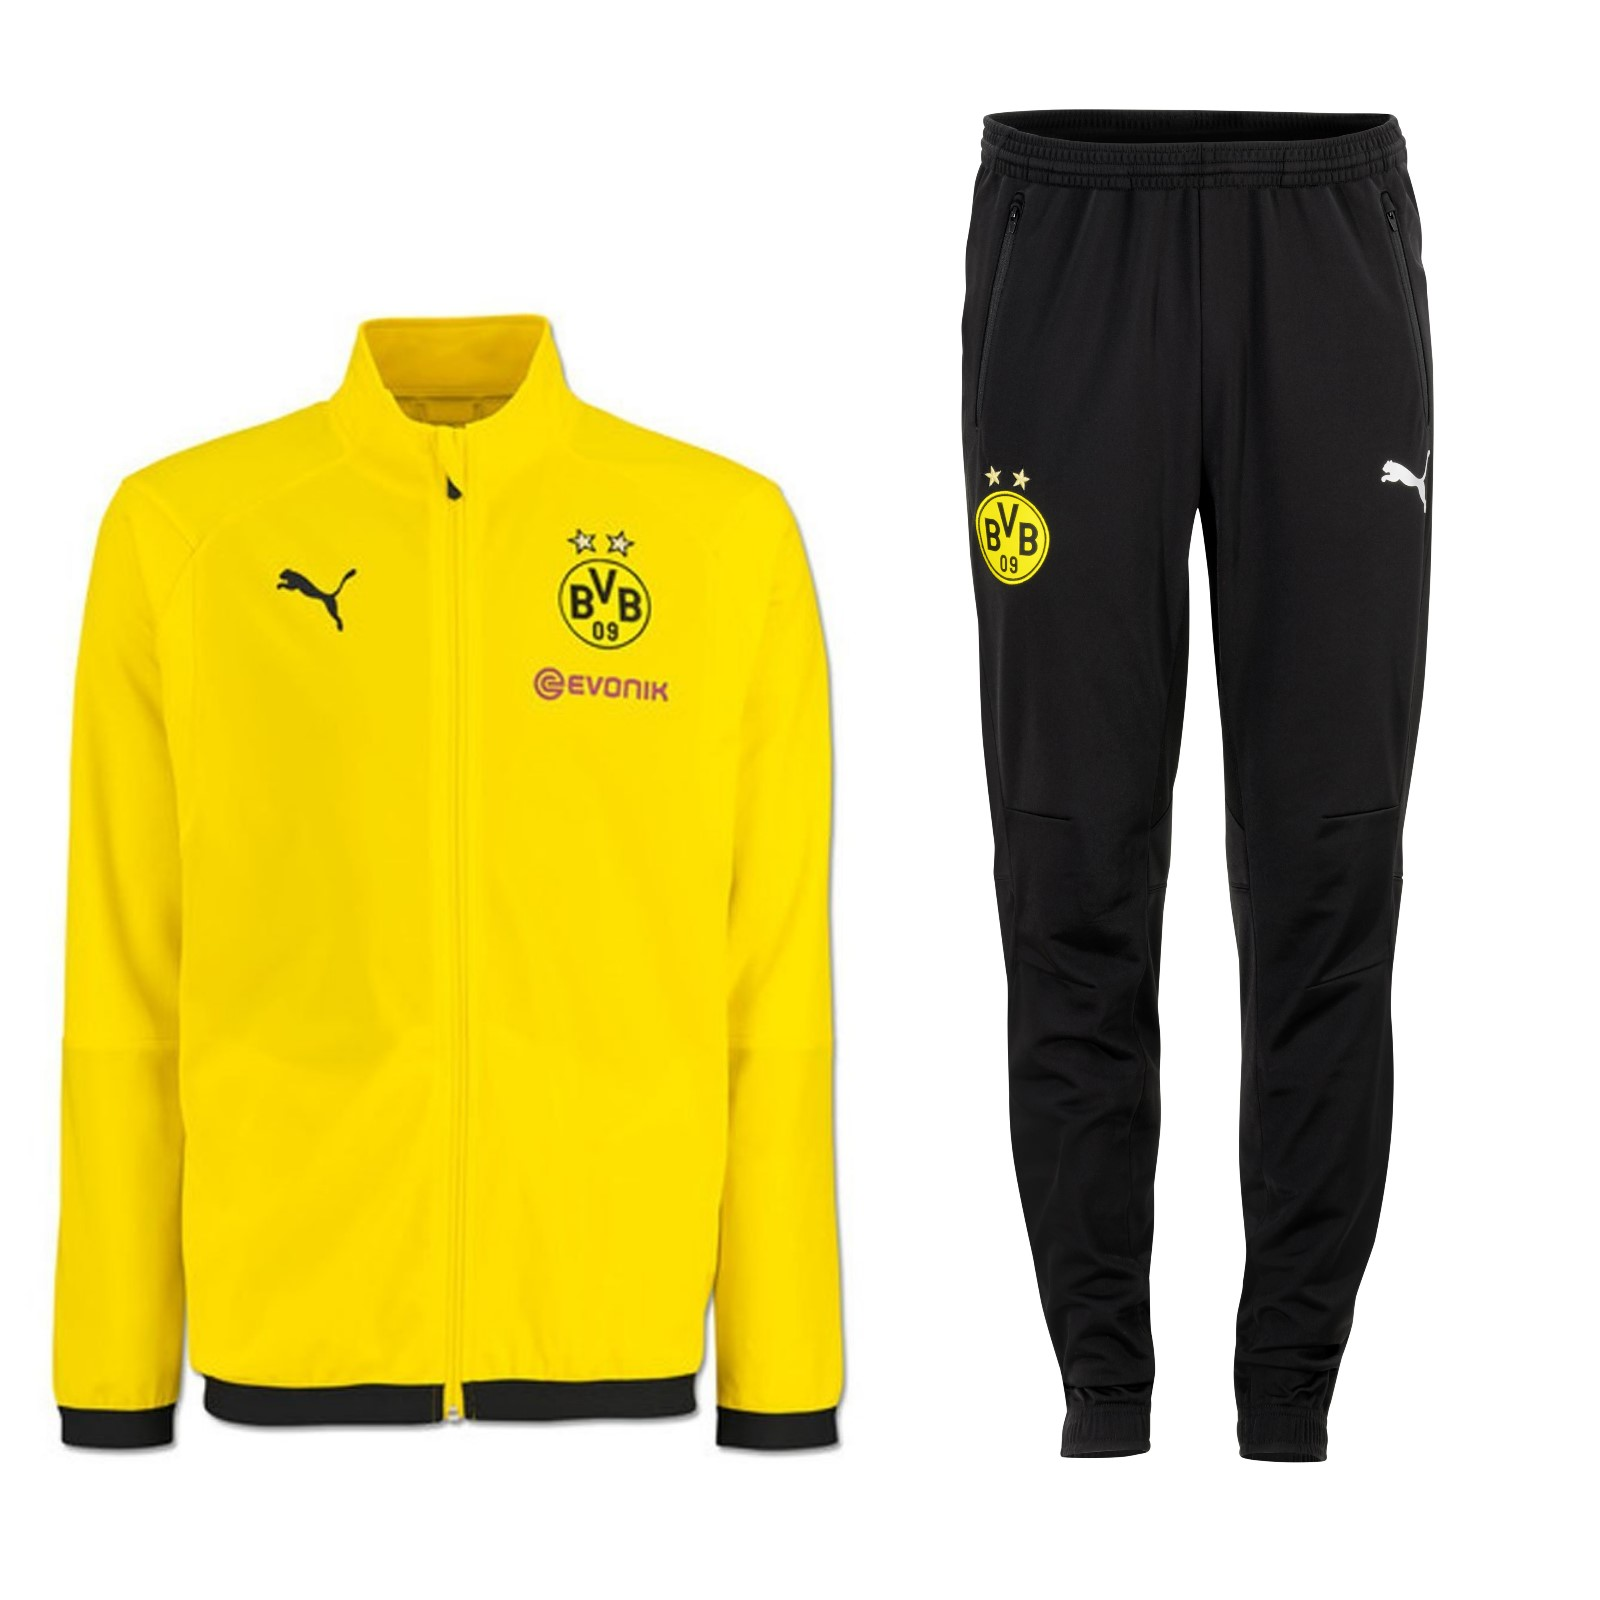 Sportanzug Herren Trainingsanzug puma